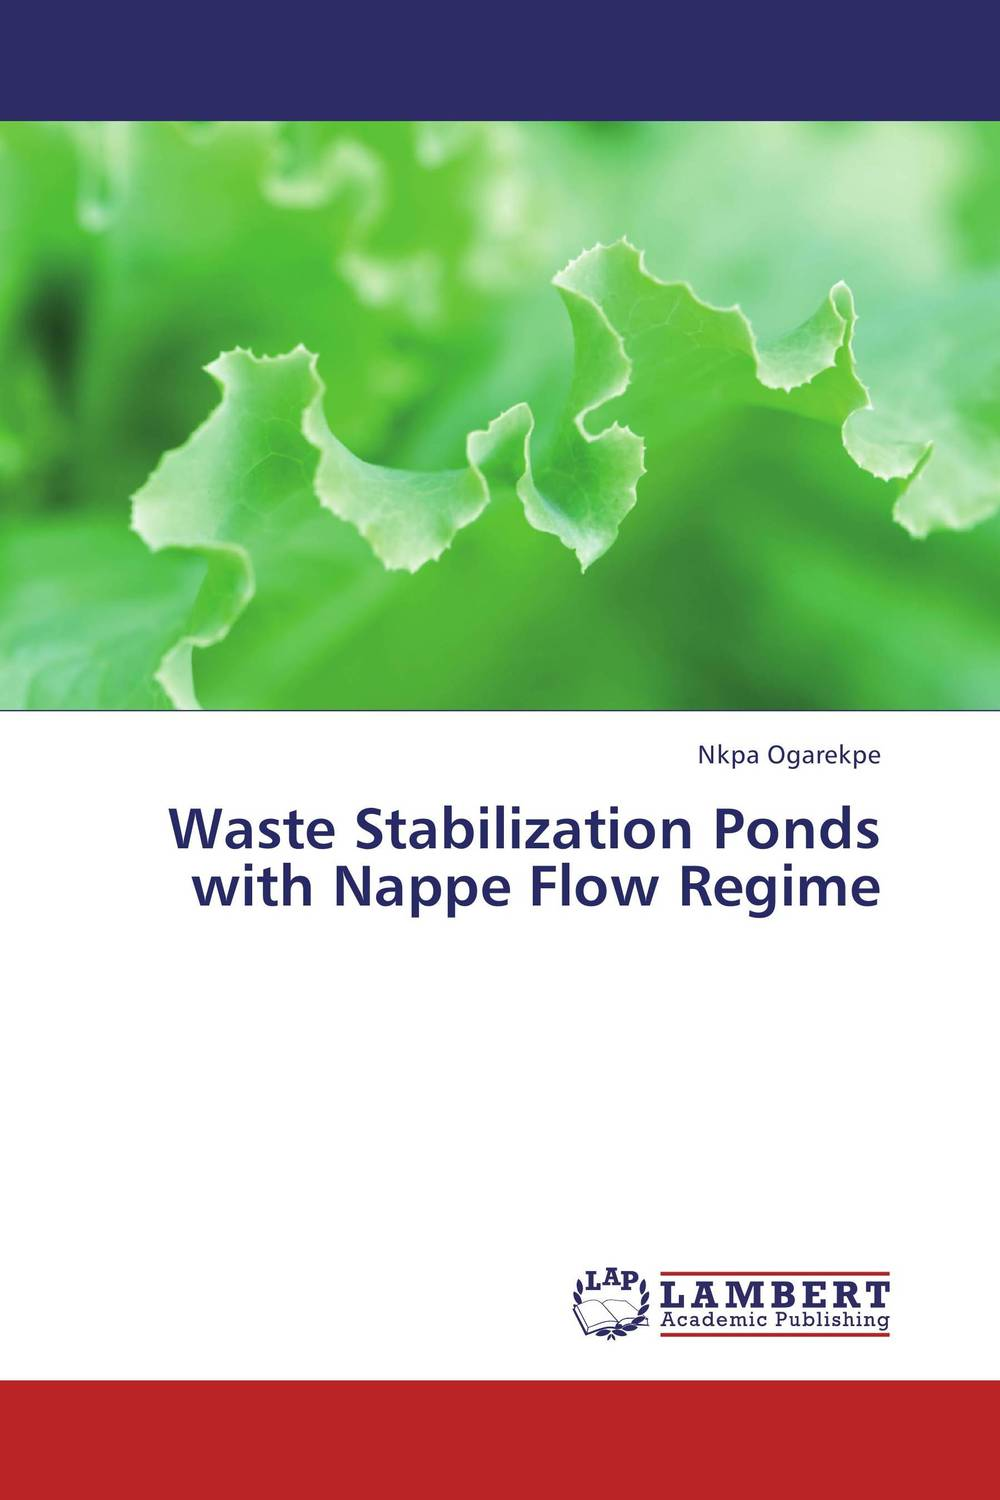 Waste Stabilization Ponds with Nappe Flow Regime analysis of pharmaceuticals in wastewater and their photodegradation